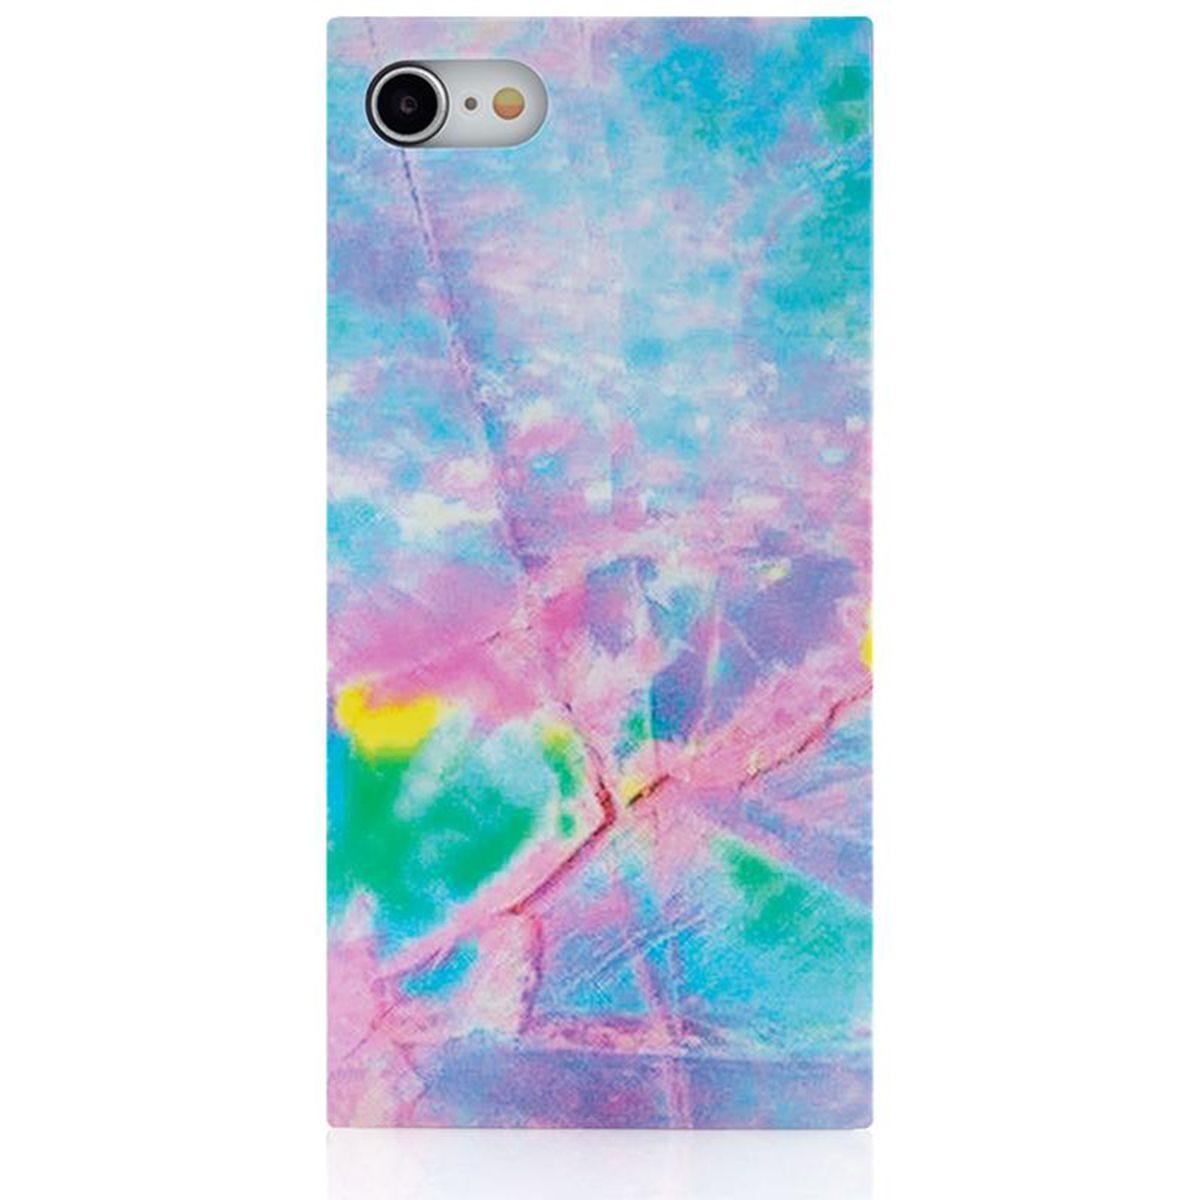 iDecoz Opal Phone Case iPhone 7/8